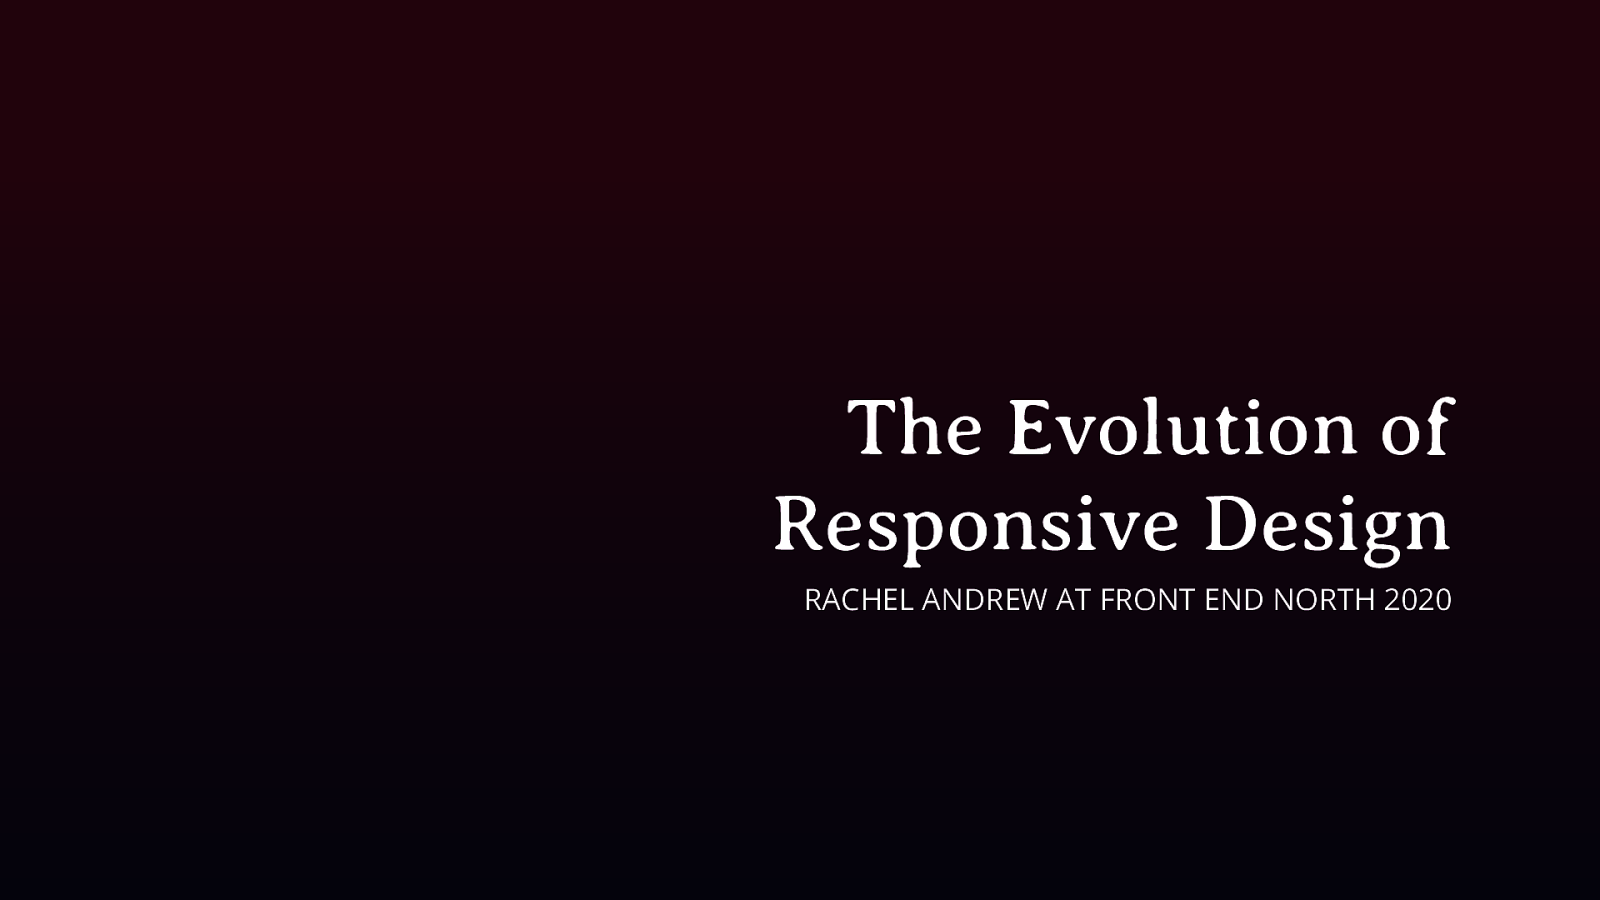 The Evolution of Responsive Design